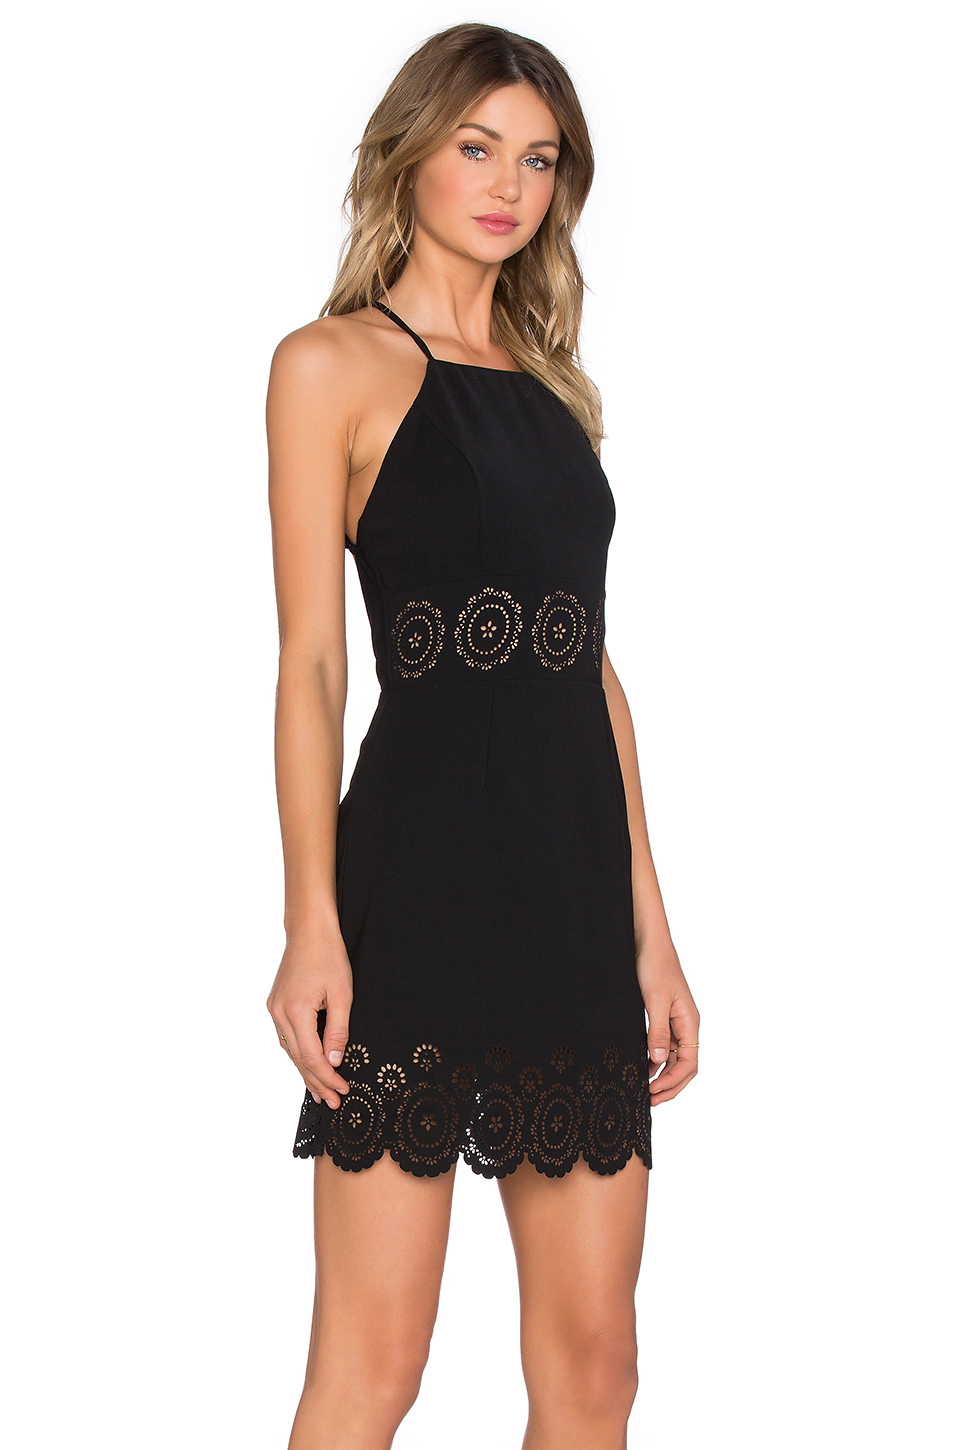 6d1c6dc297ad Lovers + Friends X Revolve Nina Midi Dress in Black - Lyst